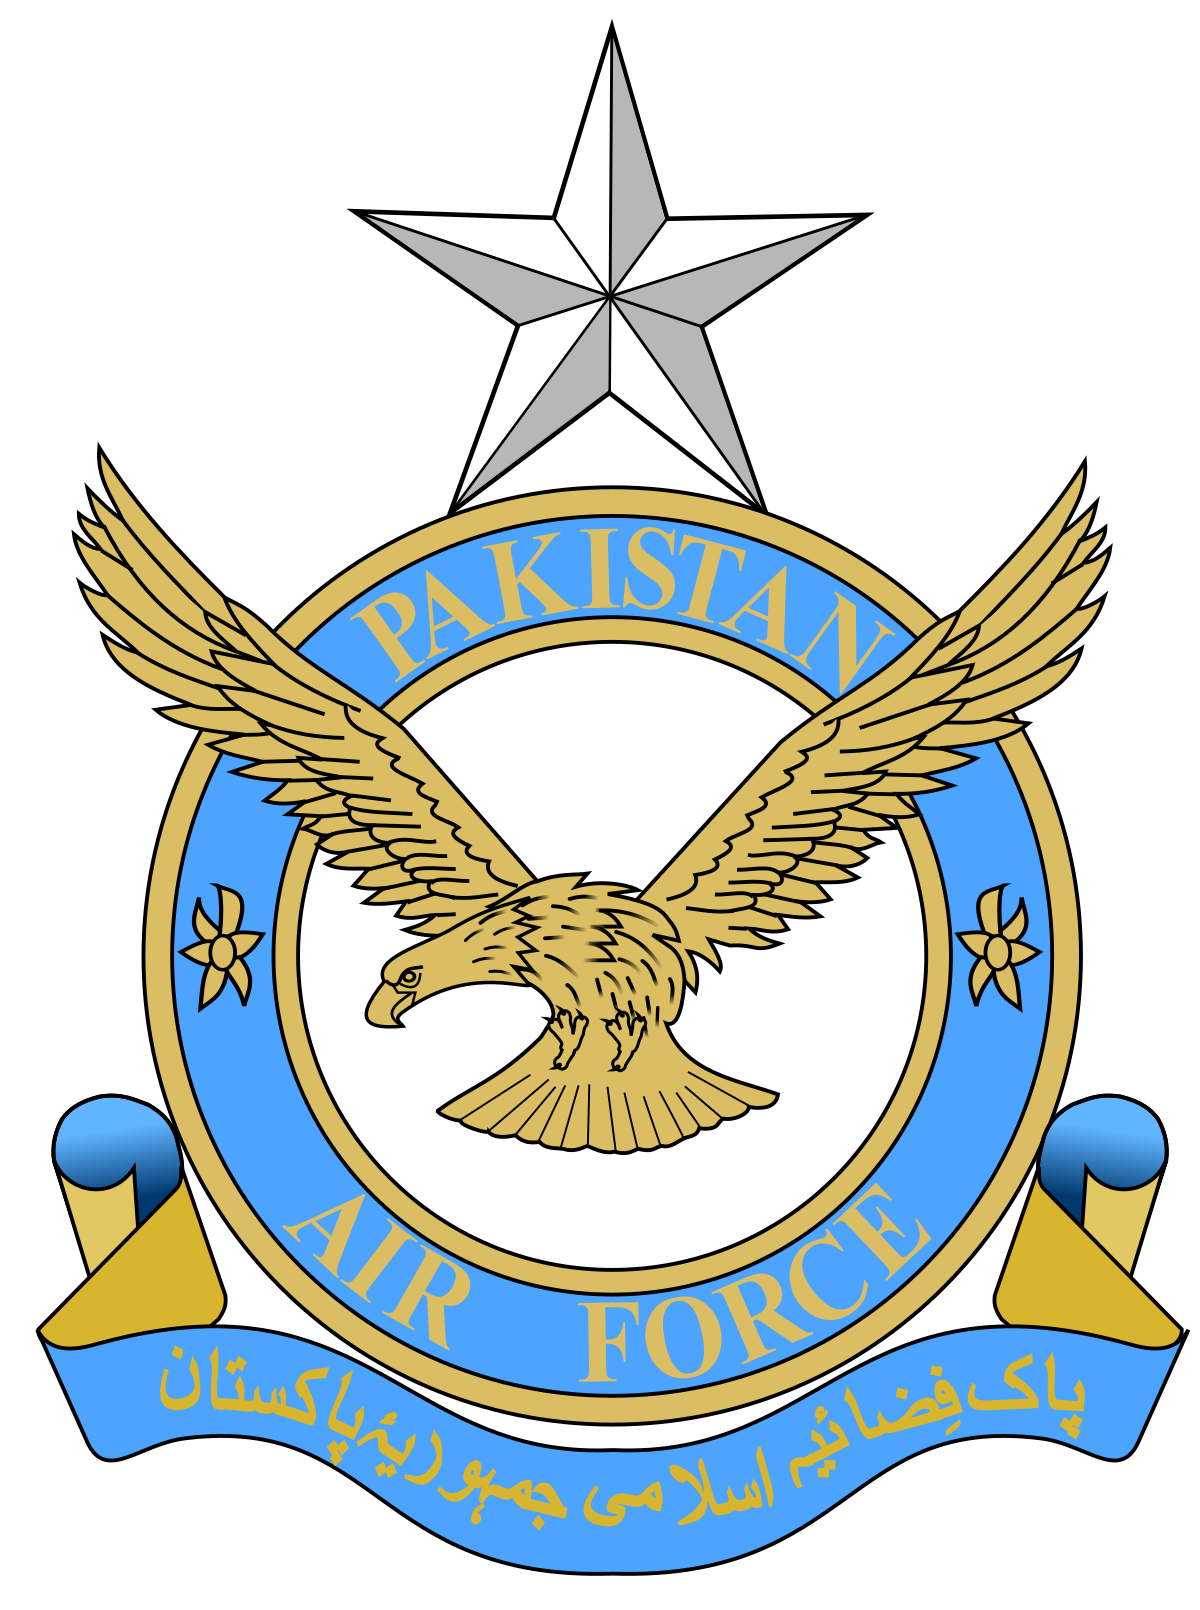 Svg 76 ilyushin il. Pakistan air force wikipedia